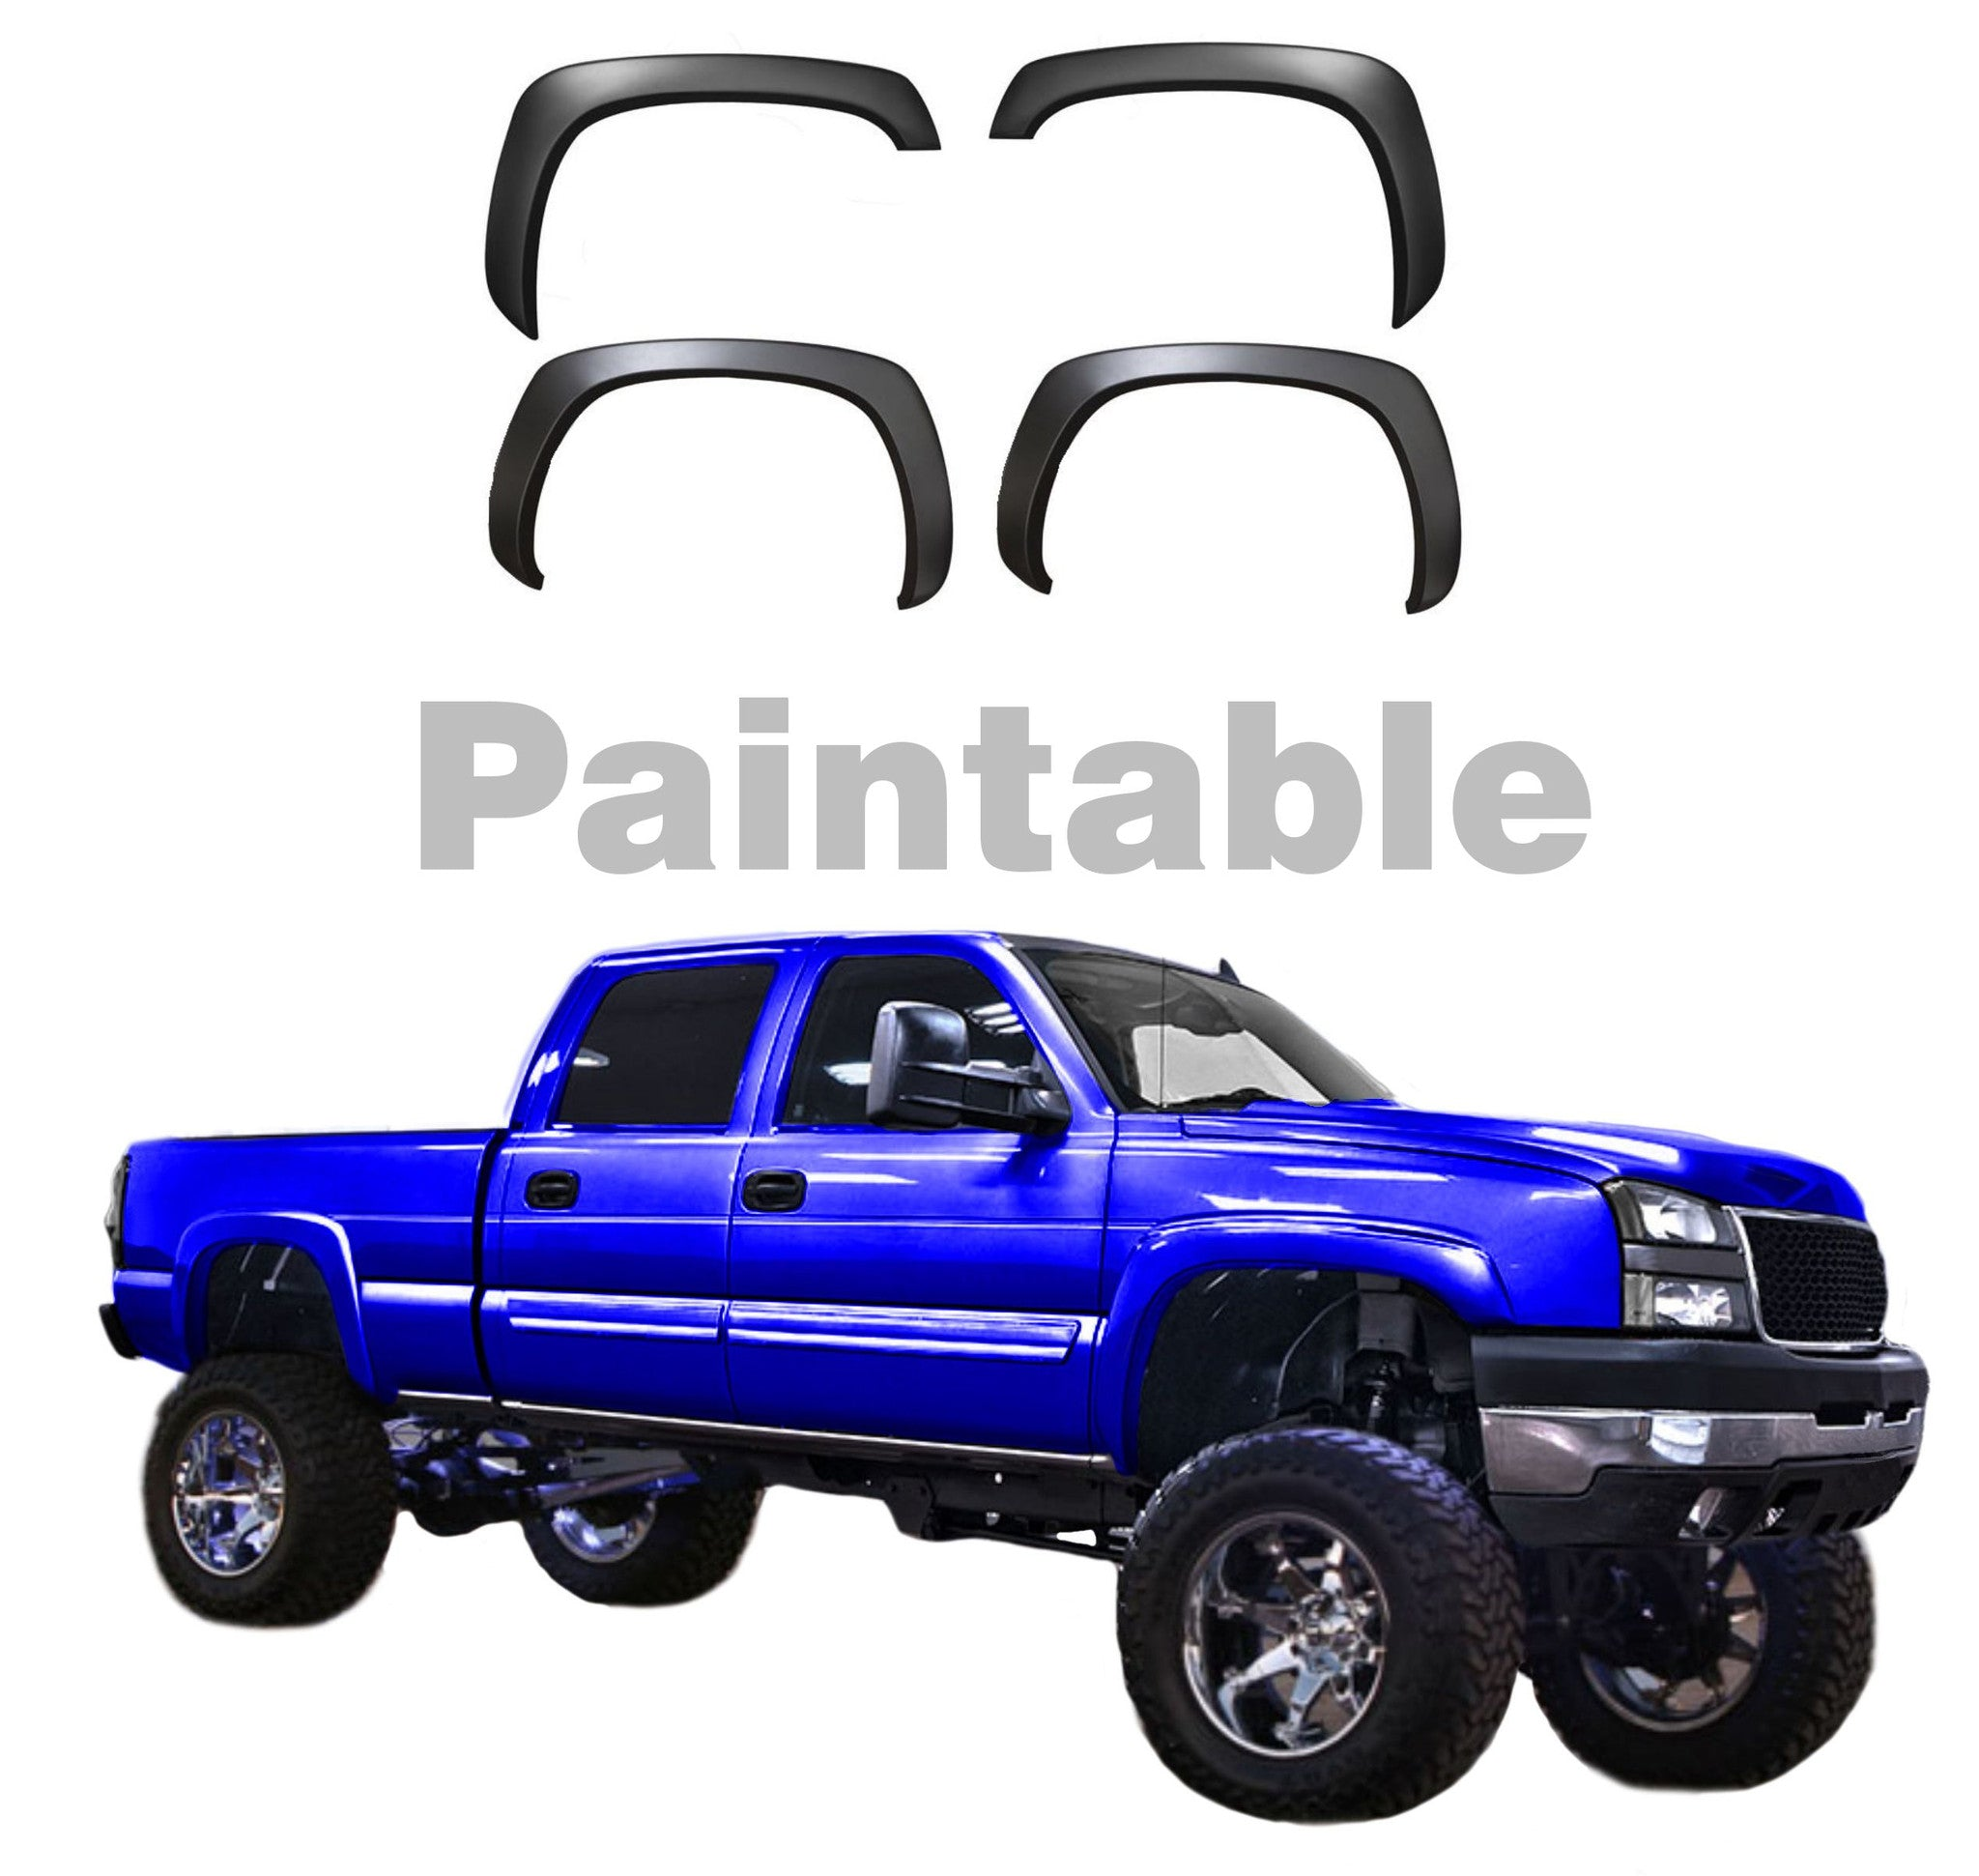 99-06 GMC SIERRA / CHEVY SILVERADO FACTORY STYLE FENDER FLARES - BLACK MATTE 4PC - AE-Power